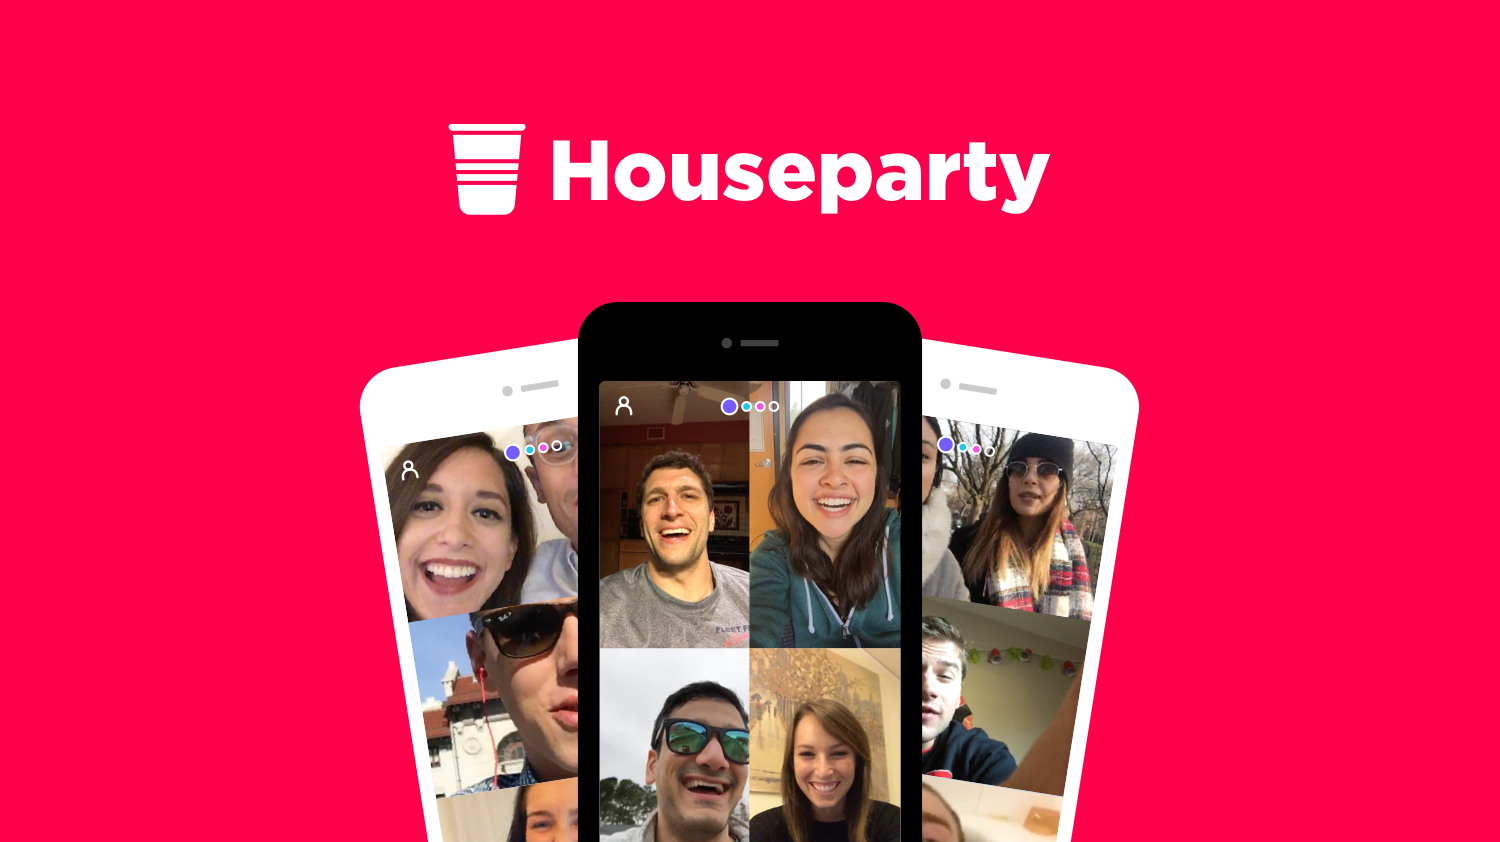 Houseparty.